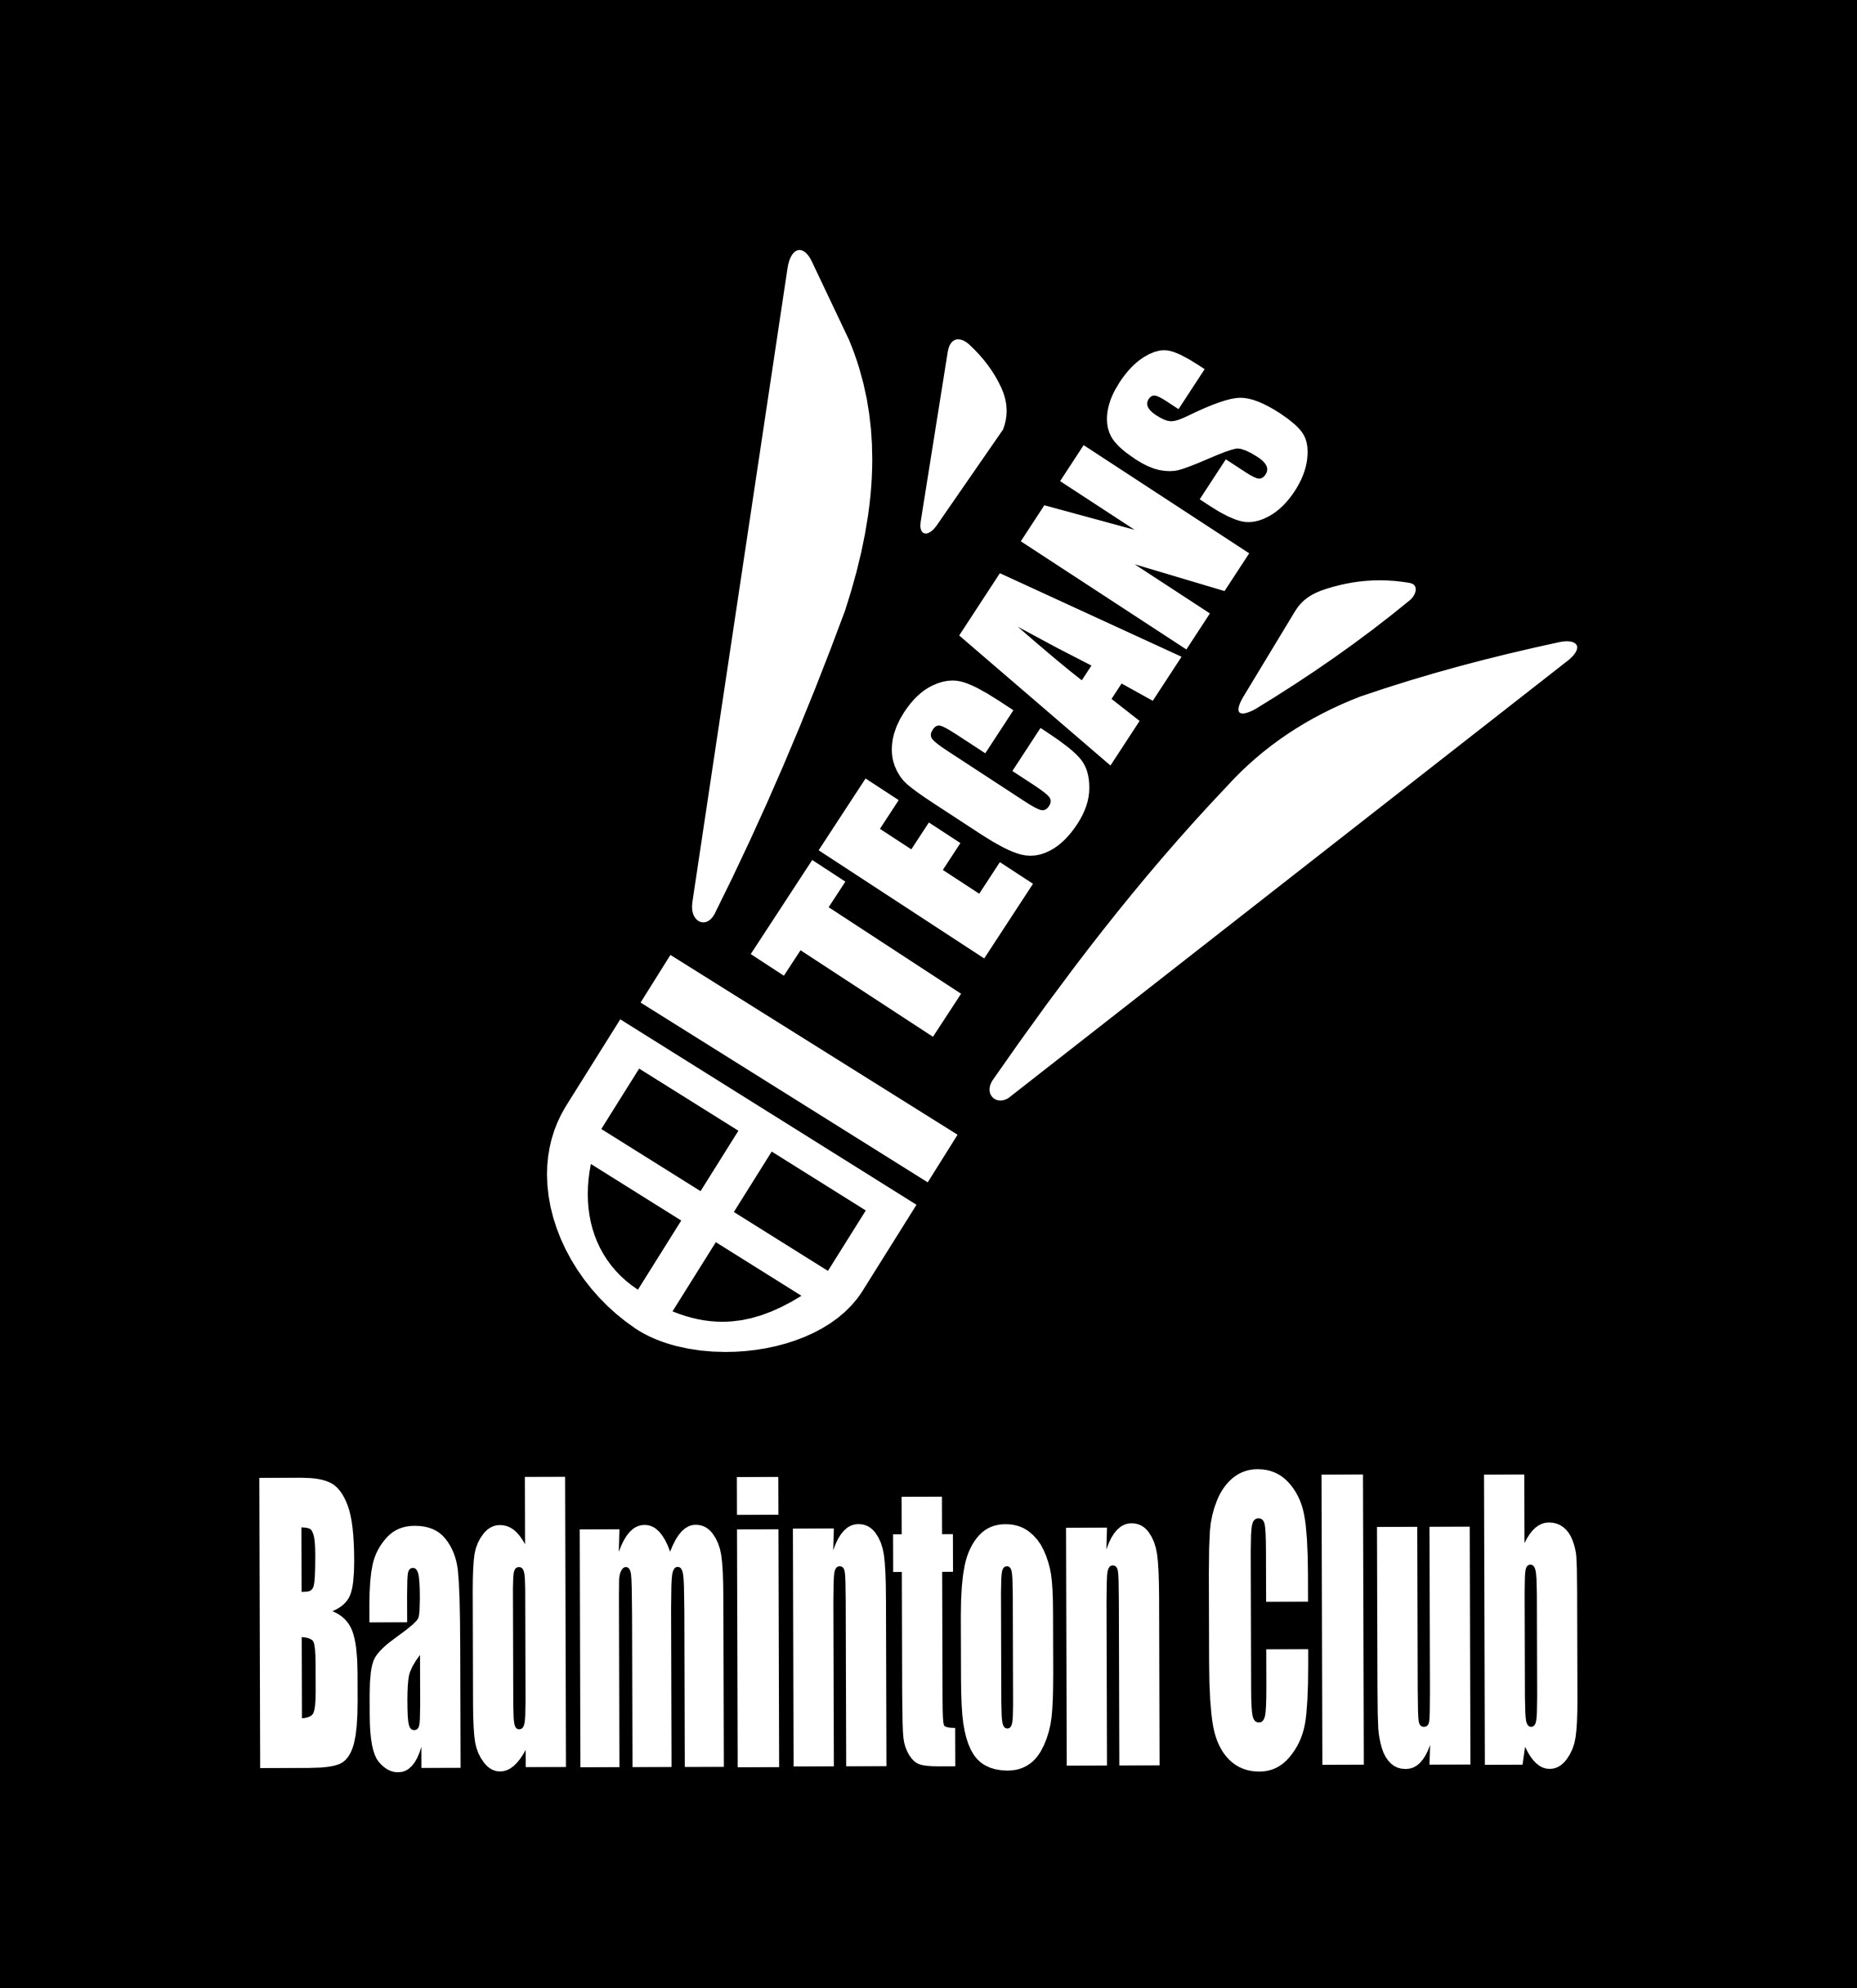 Tecans Badminton Club